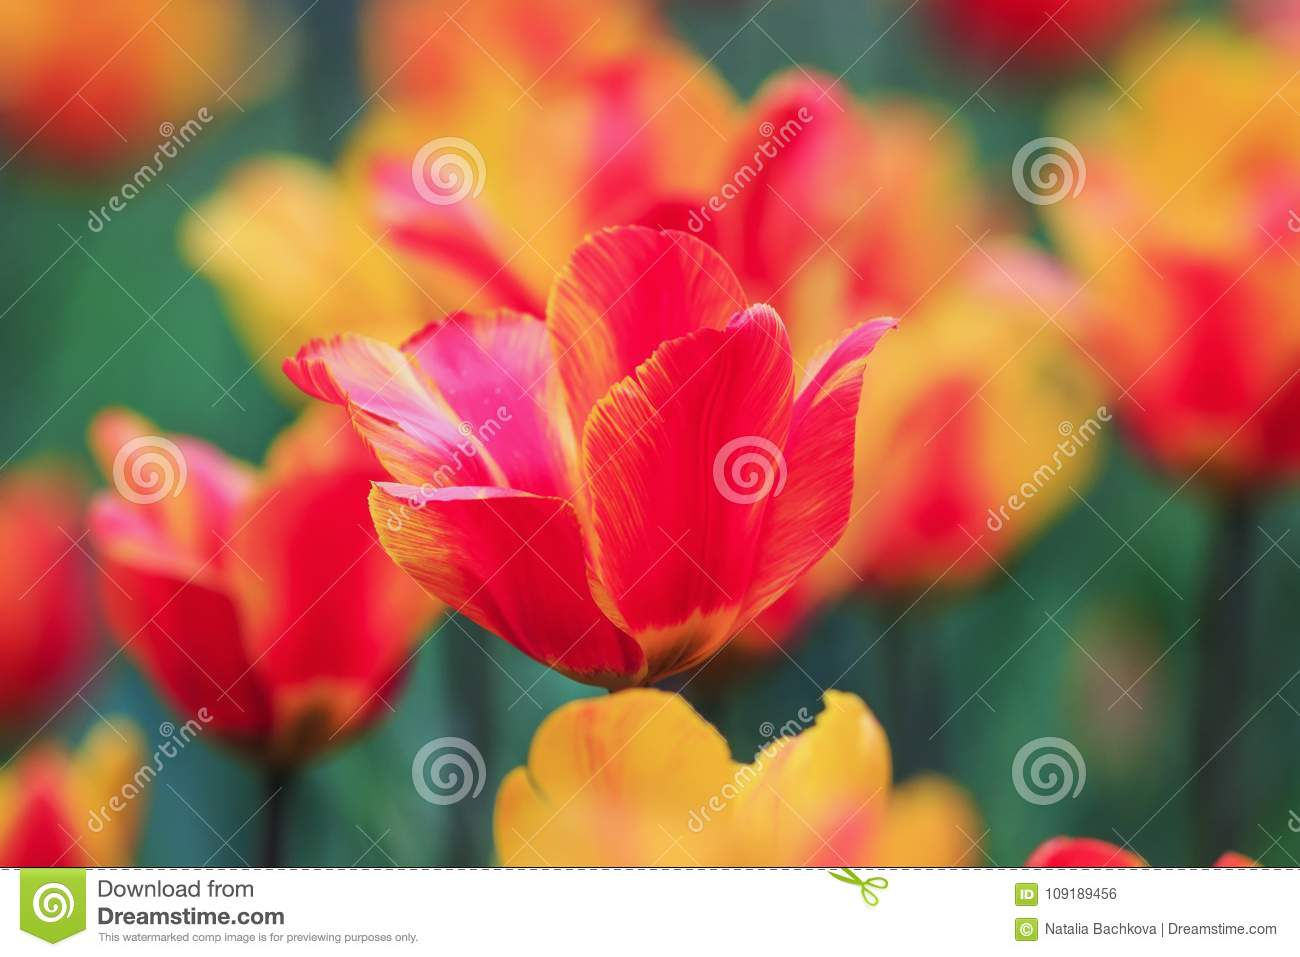 Beautiful Bright Flowers And Buds Of A Tulip Blooming In The Spr